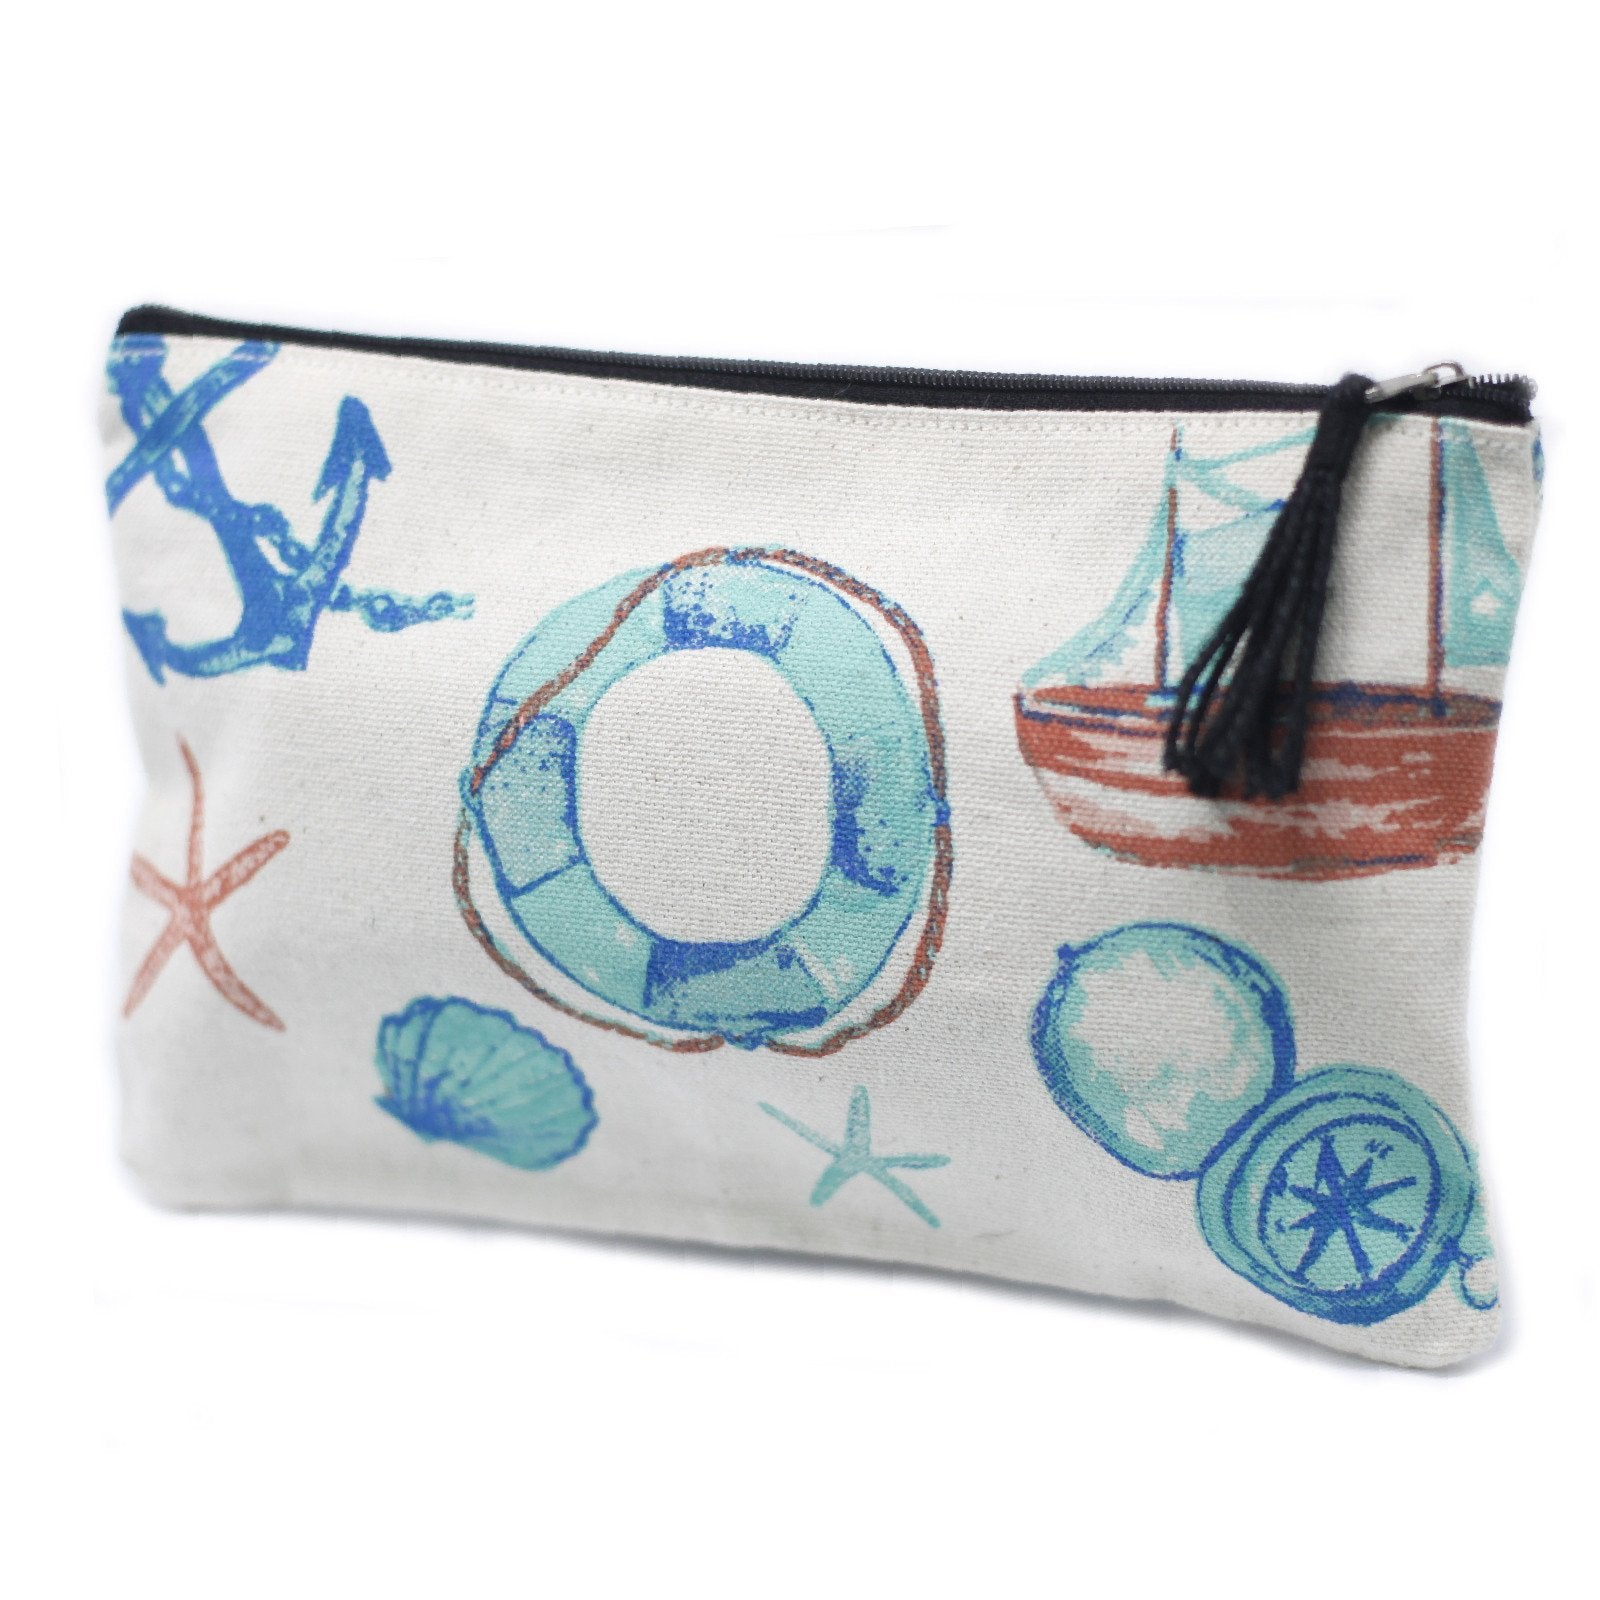 Anchors Classic Zip Pouch - Gift2U.co.uk - Unique gifts online to You